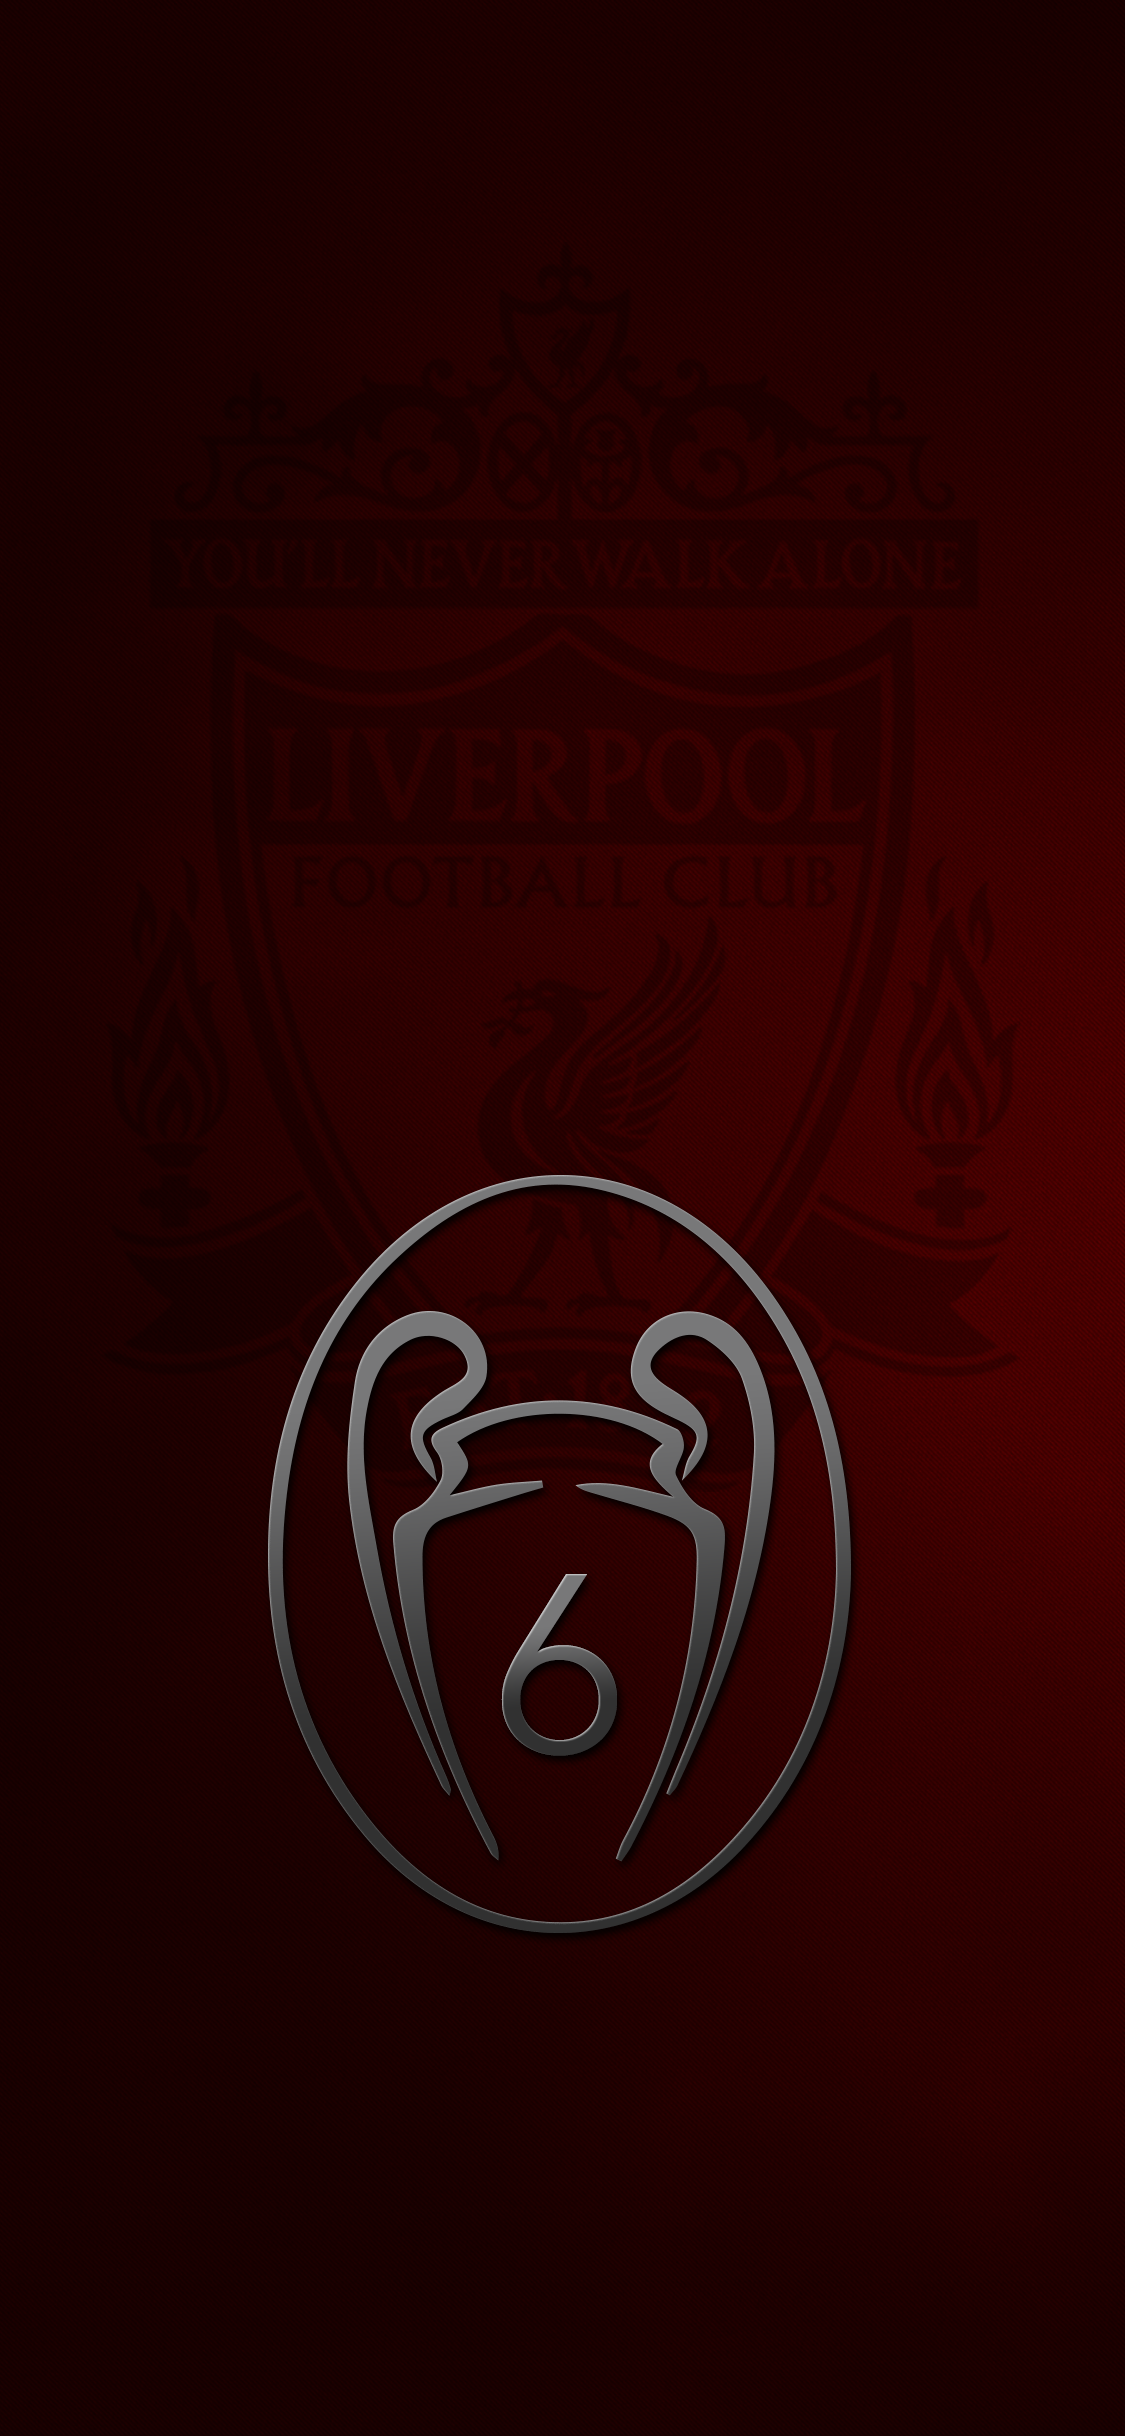 Liverpool FC iPhone X Wallpaper by